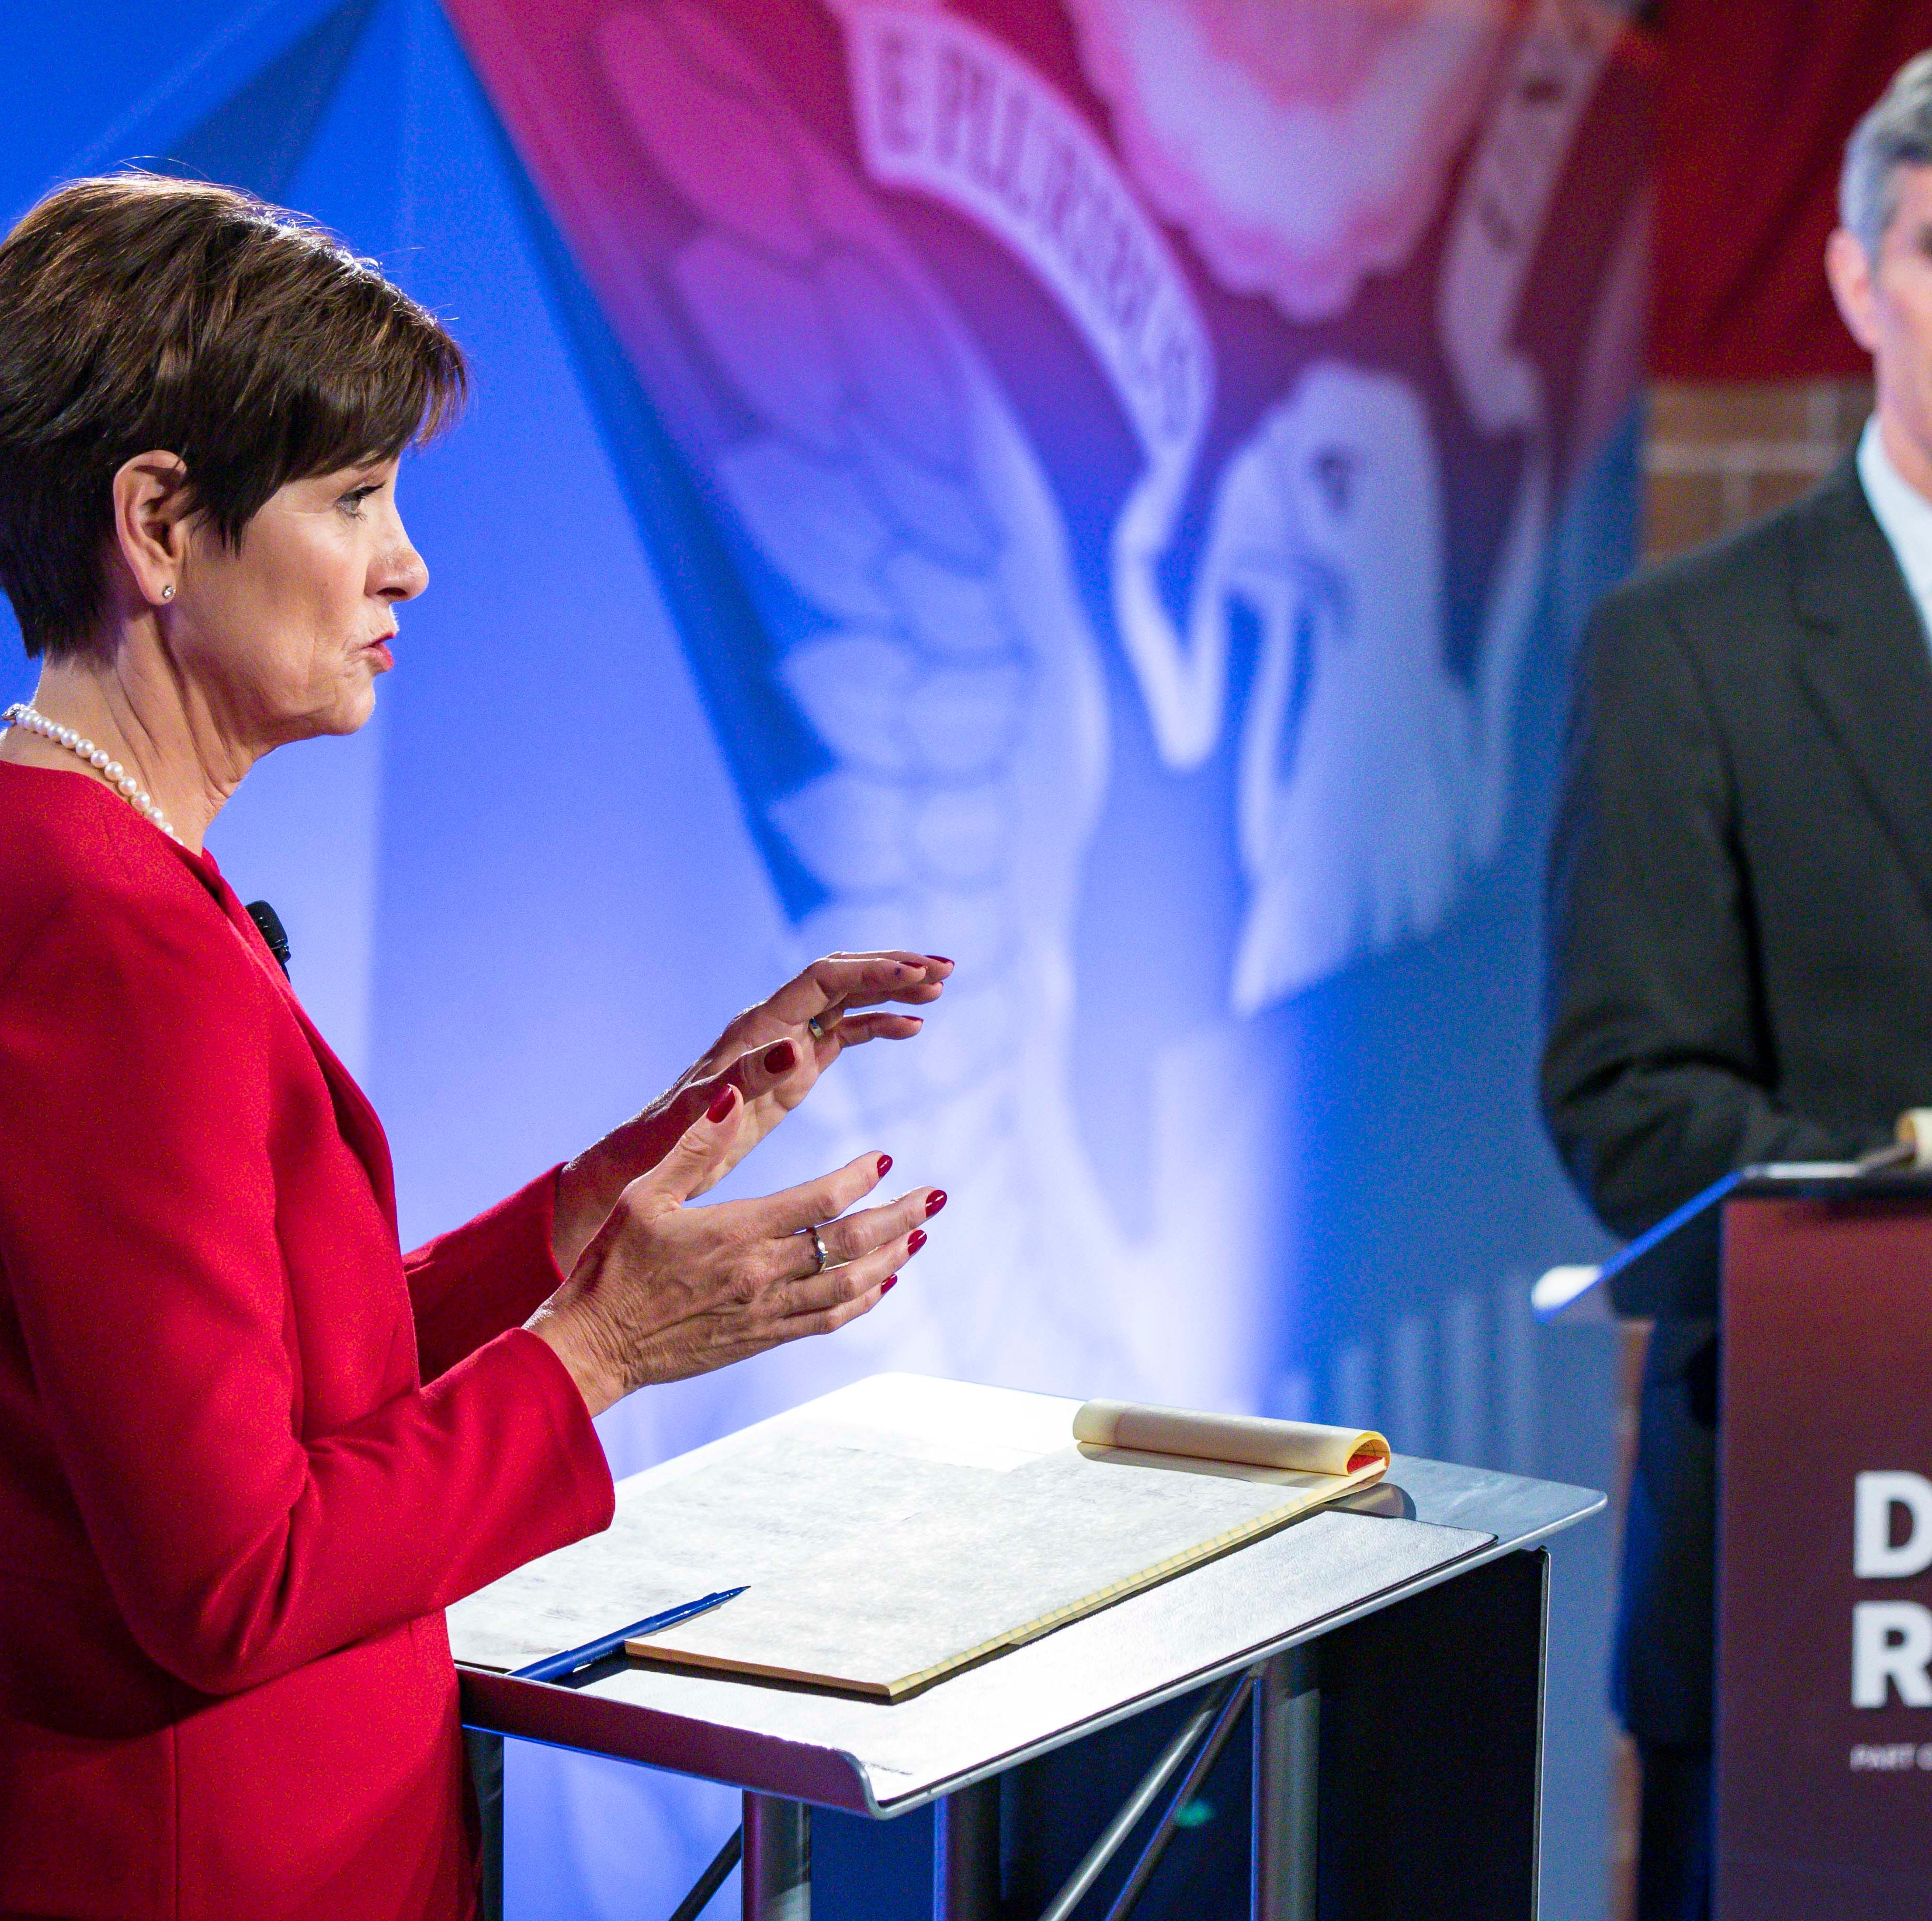 Iowa's two leading candidates for governor sparred over 3 key issues in second debate